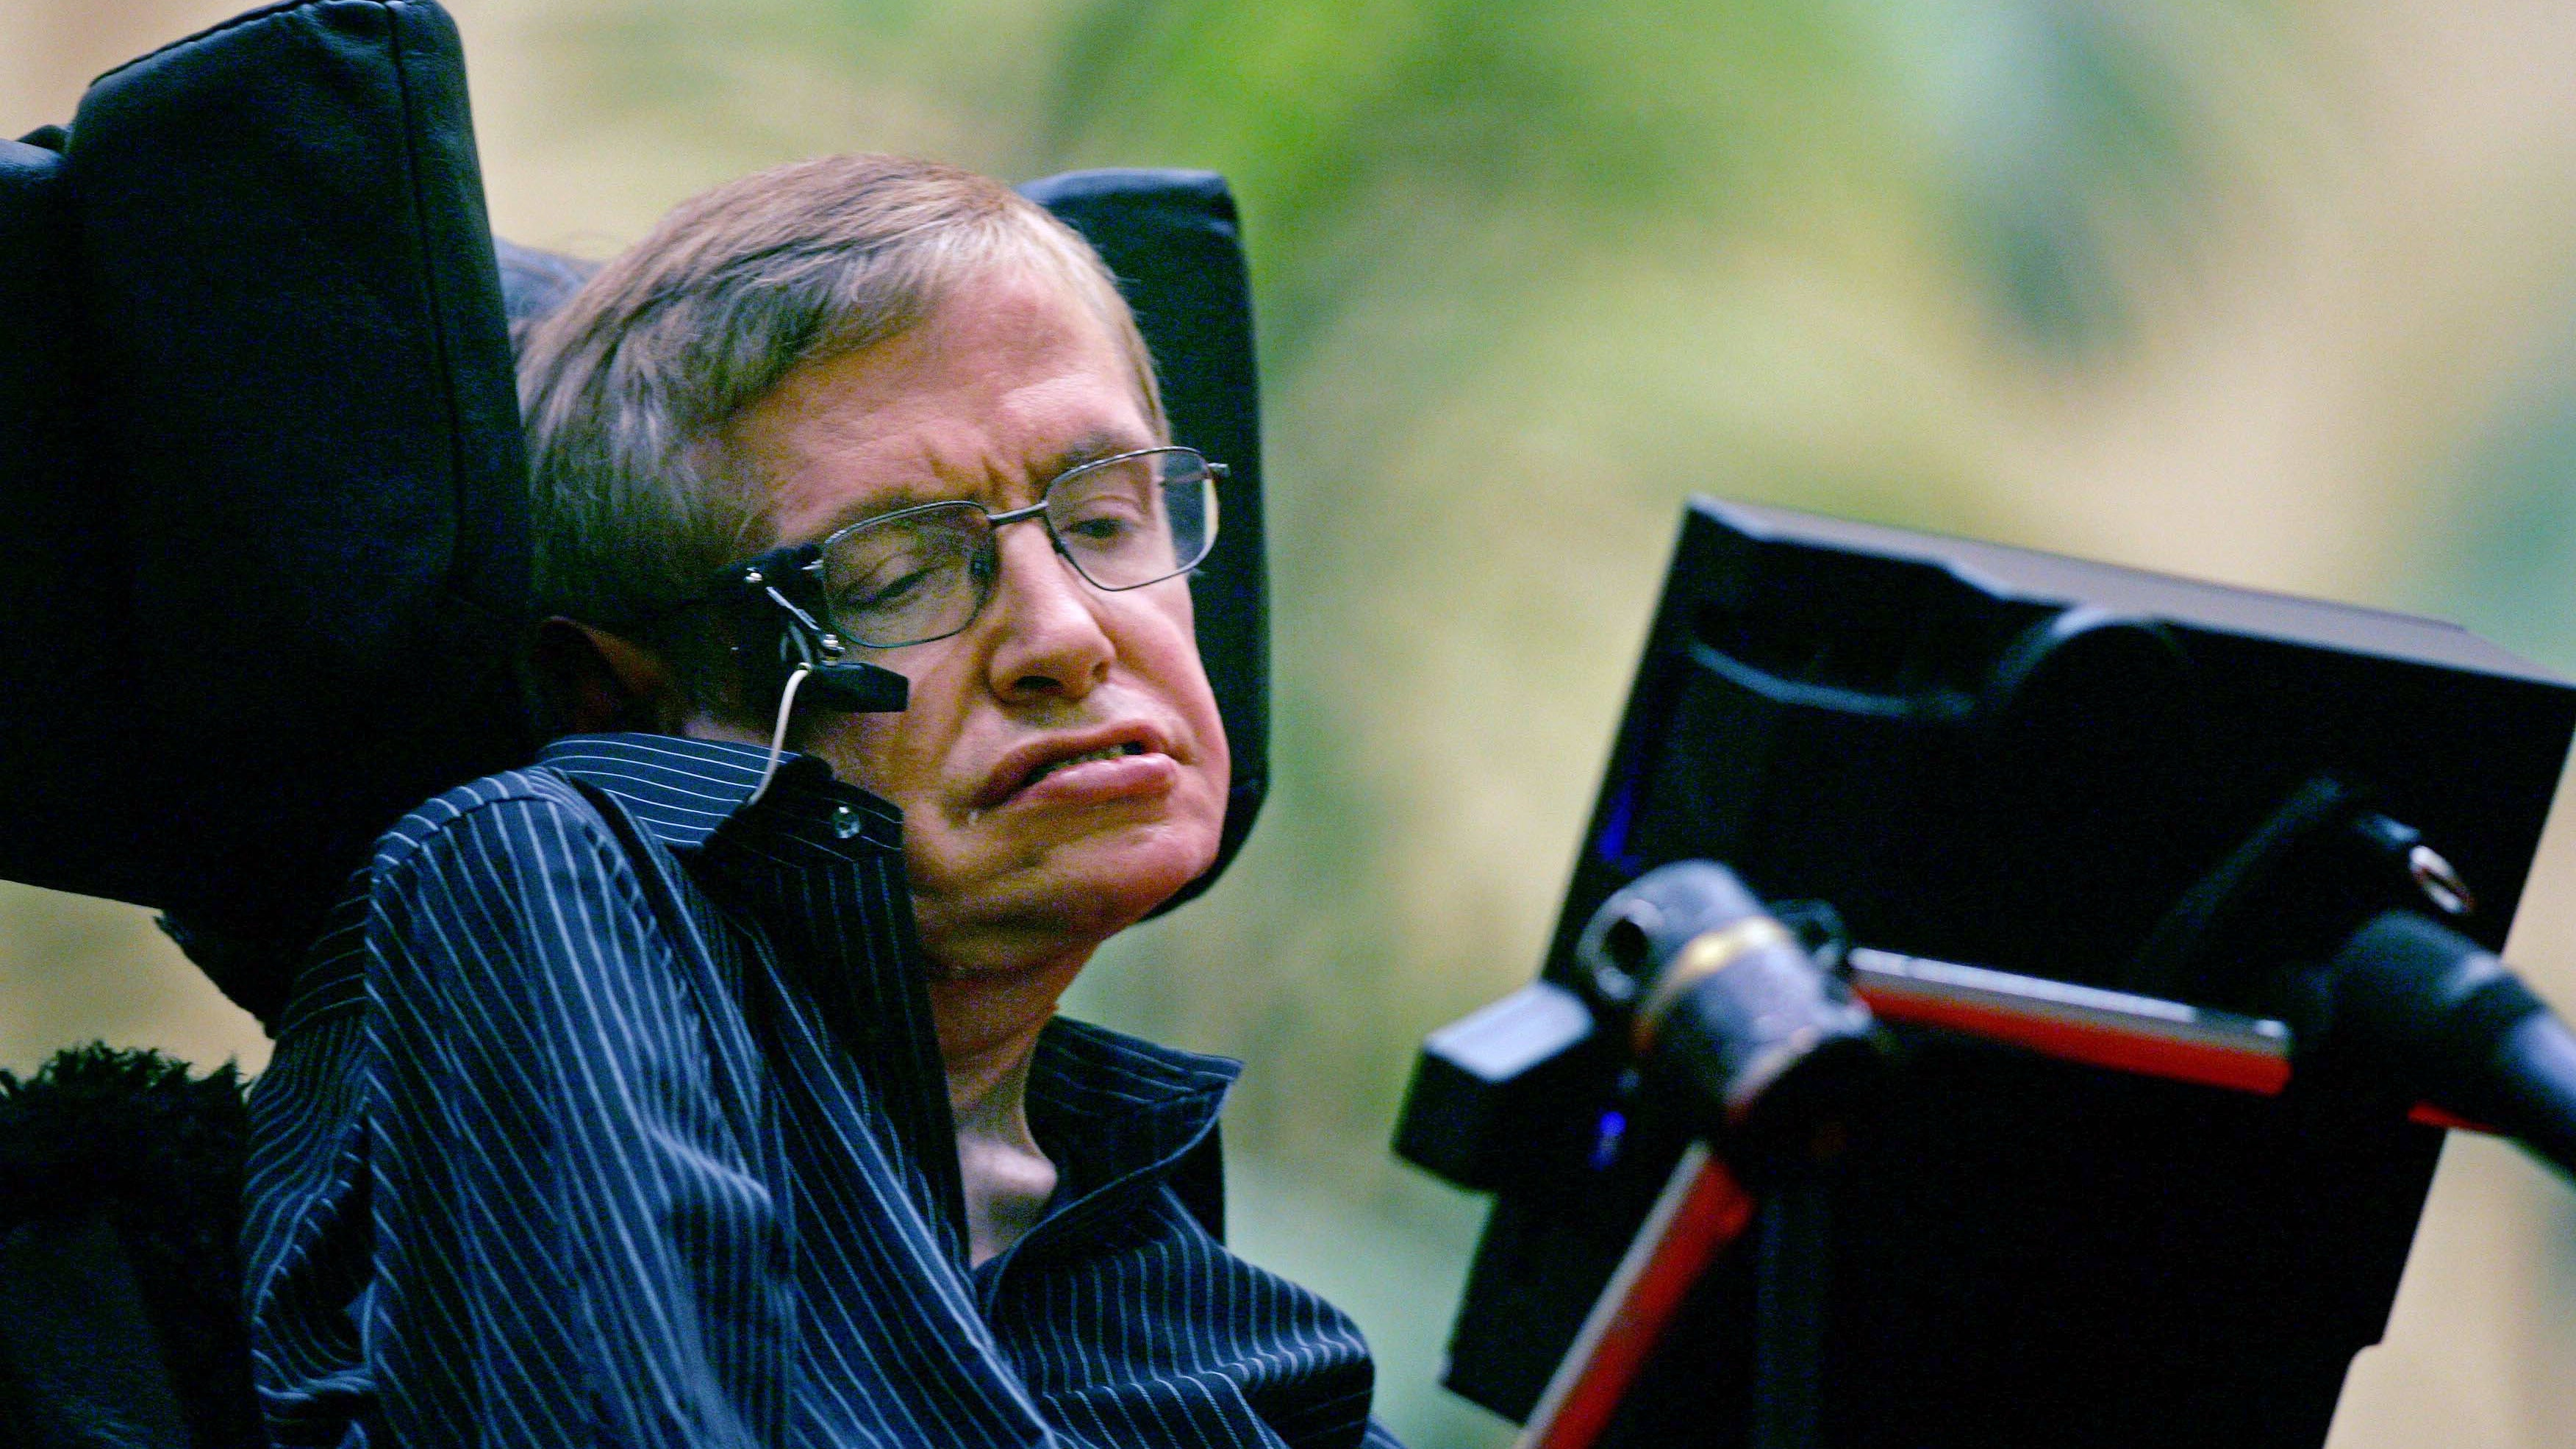 Hey, Did You Know Stephen Hawking Thought There Is No God?